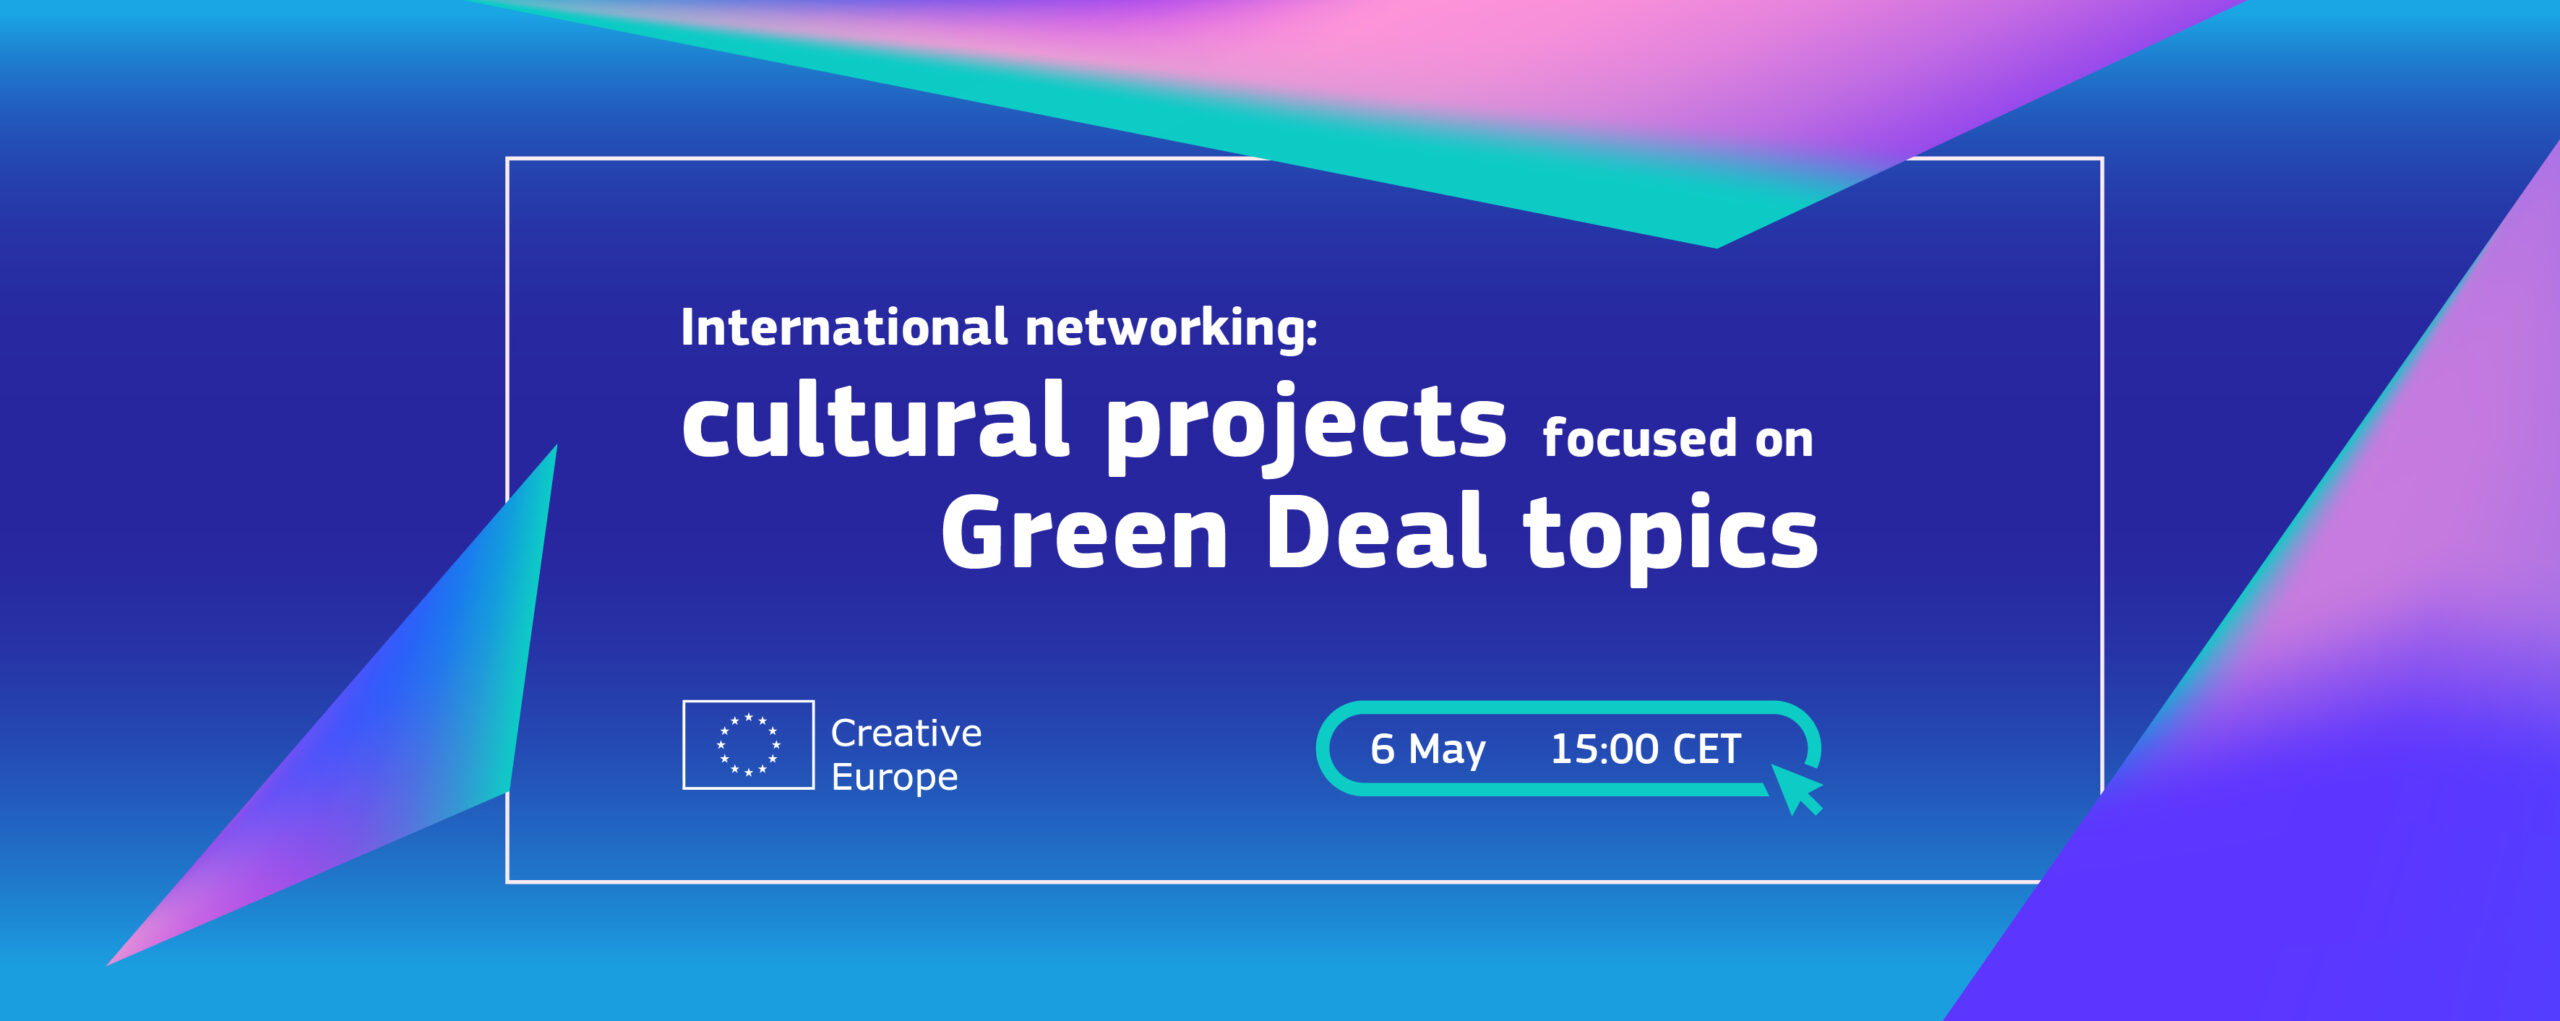 International Networking: cultural projects focused on Green Deal topics